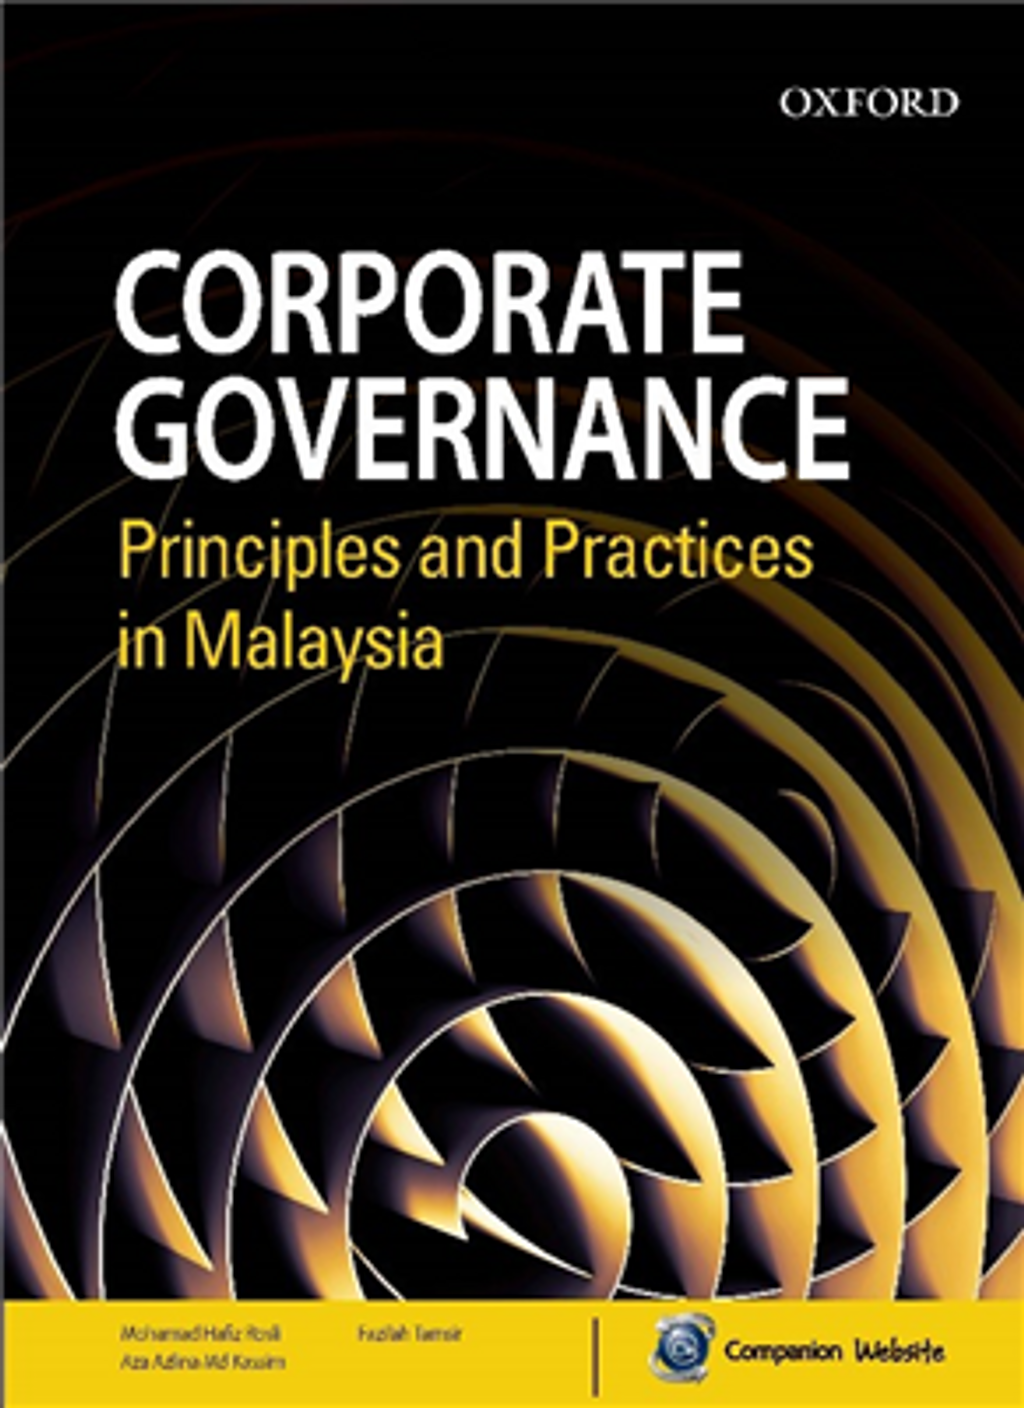 201811151650078320_Corporate-20Governance-20-20Principles-20and-20Practices-20in-20Malaysia.jpg